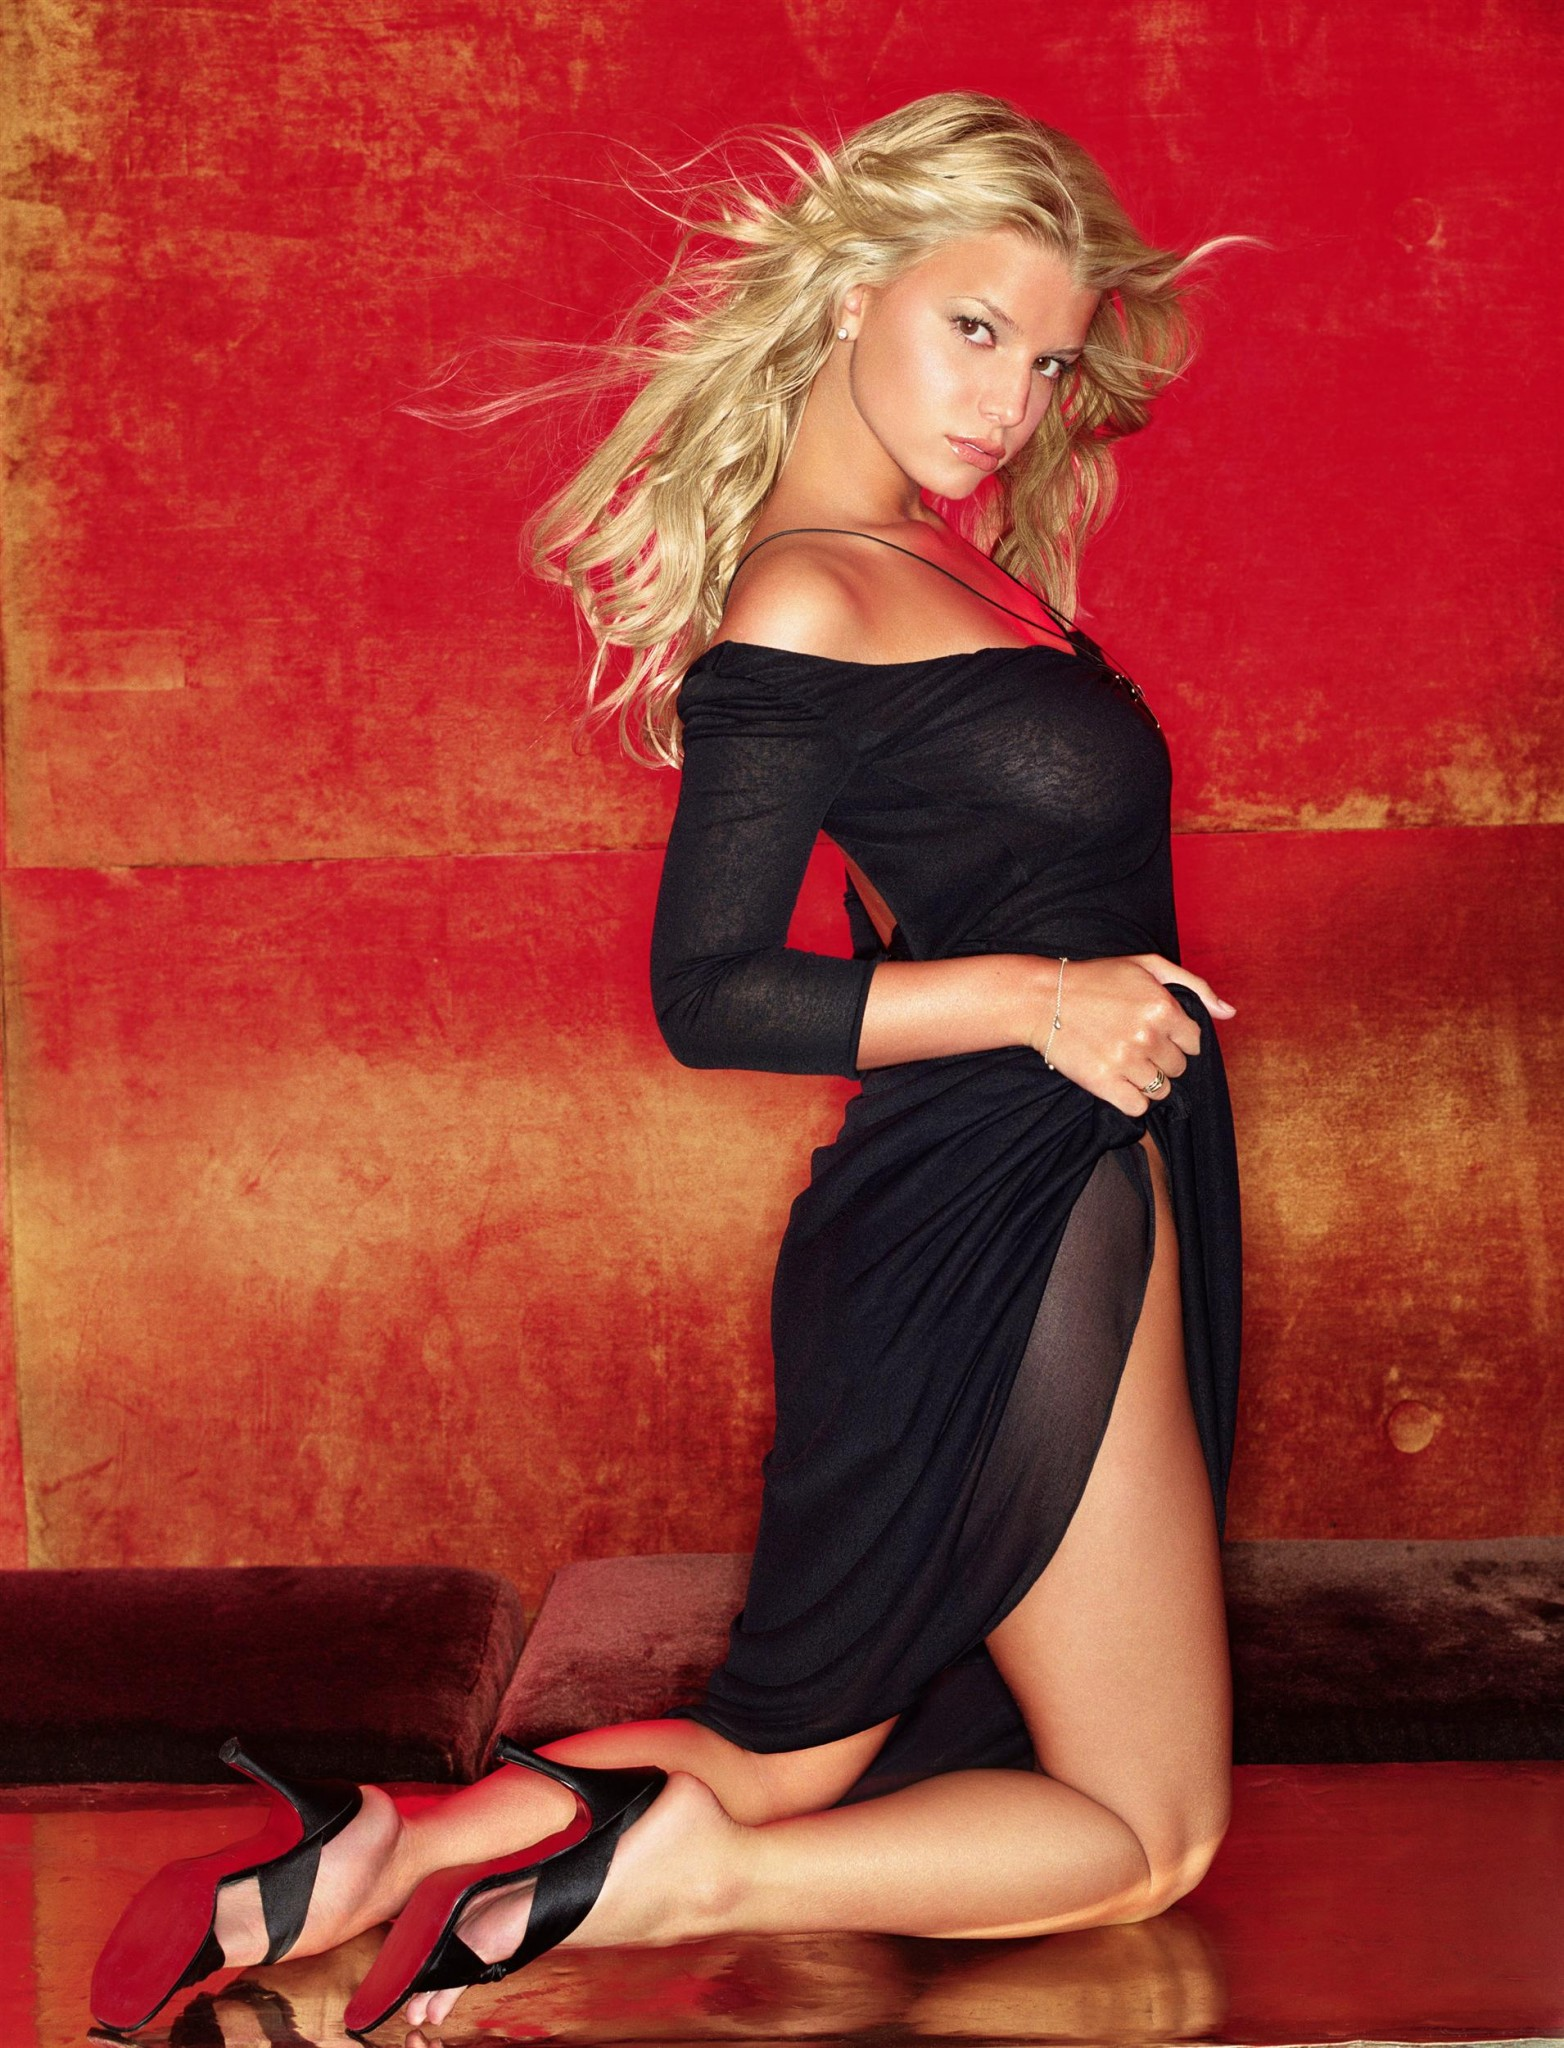 jessica-simpson-see-through-3.jpg